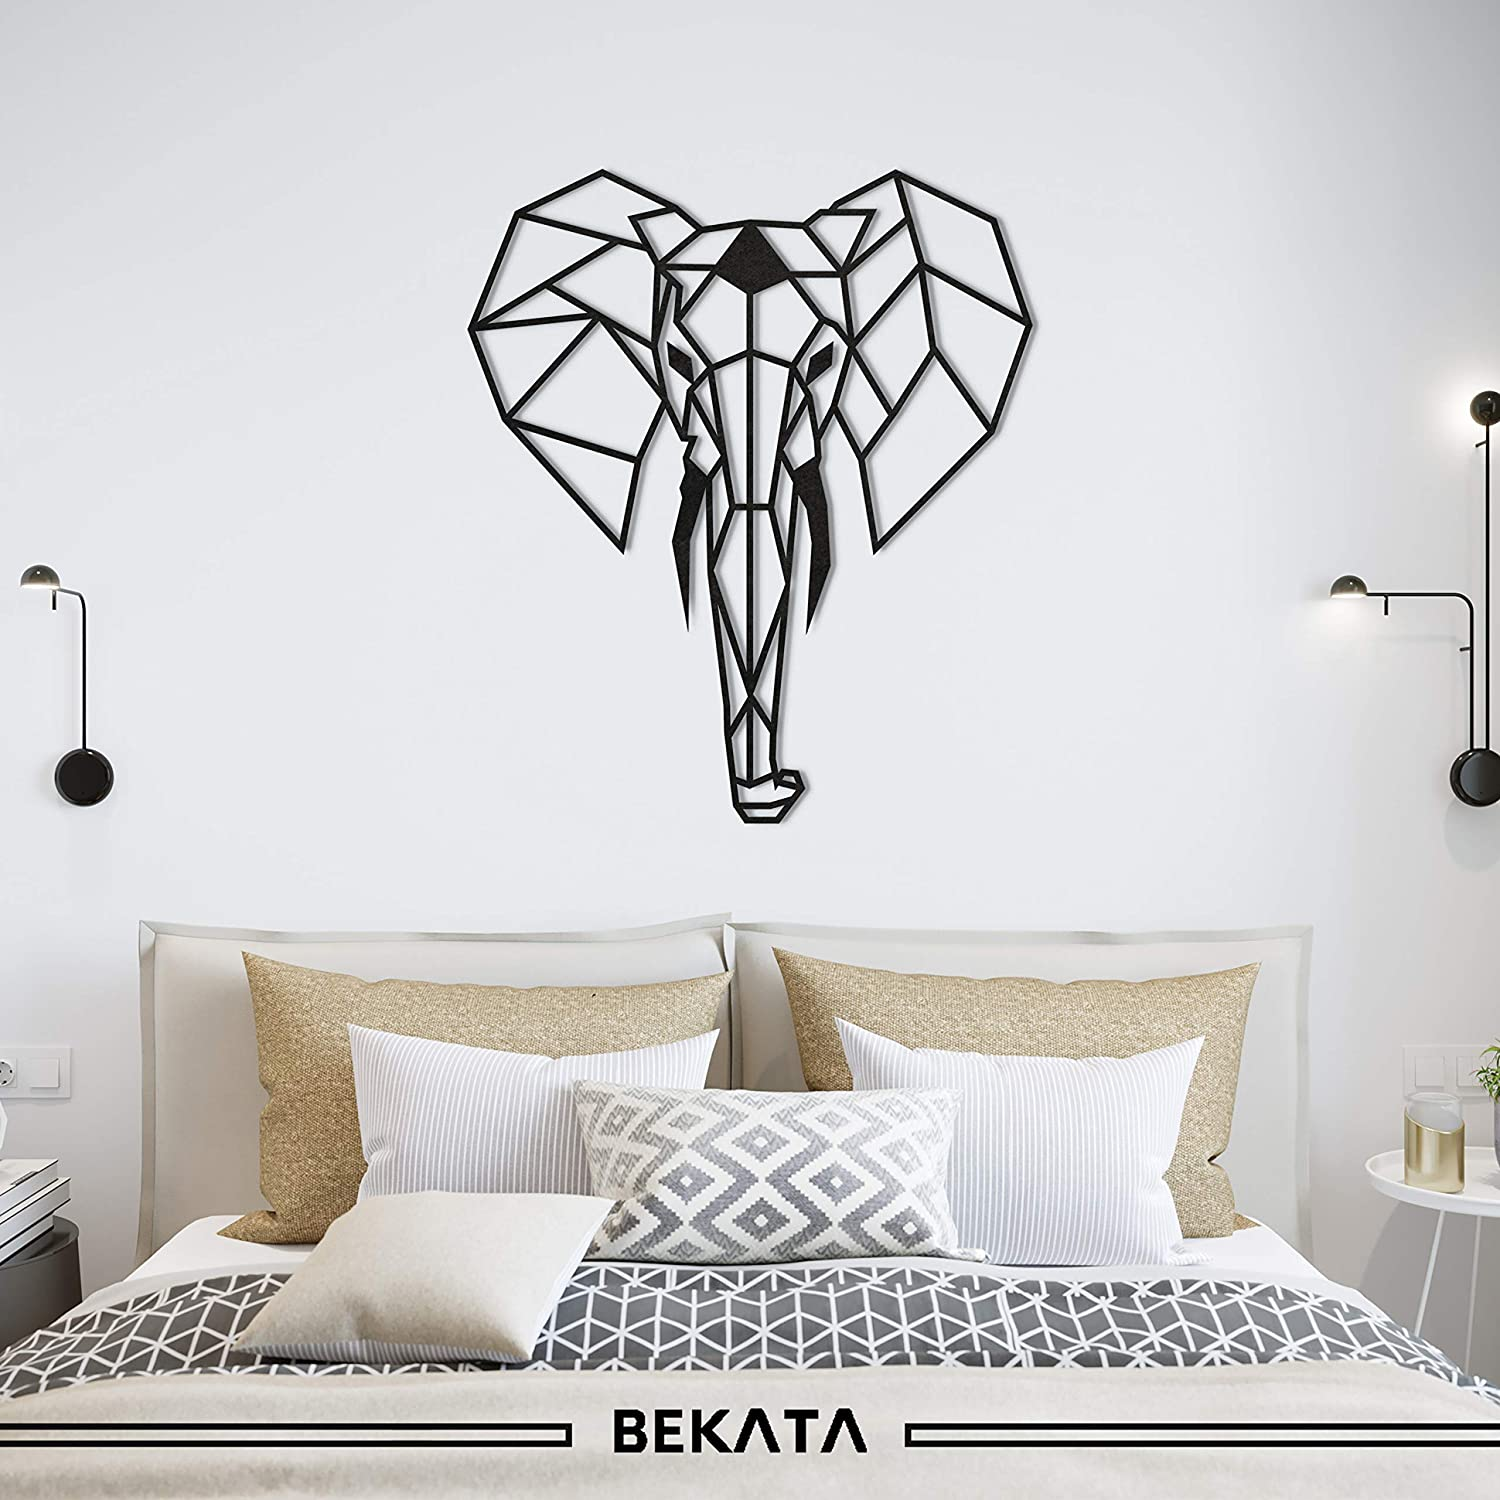 Bekata Geometric Elephant Head Metal Wall Art Metal Wall Decoration for Home Office Living Room Bedroom Small Size: 17,71 x 21 inches 45 x 53 cm